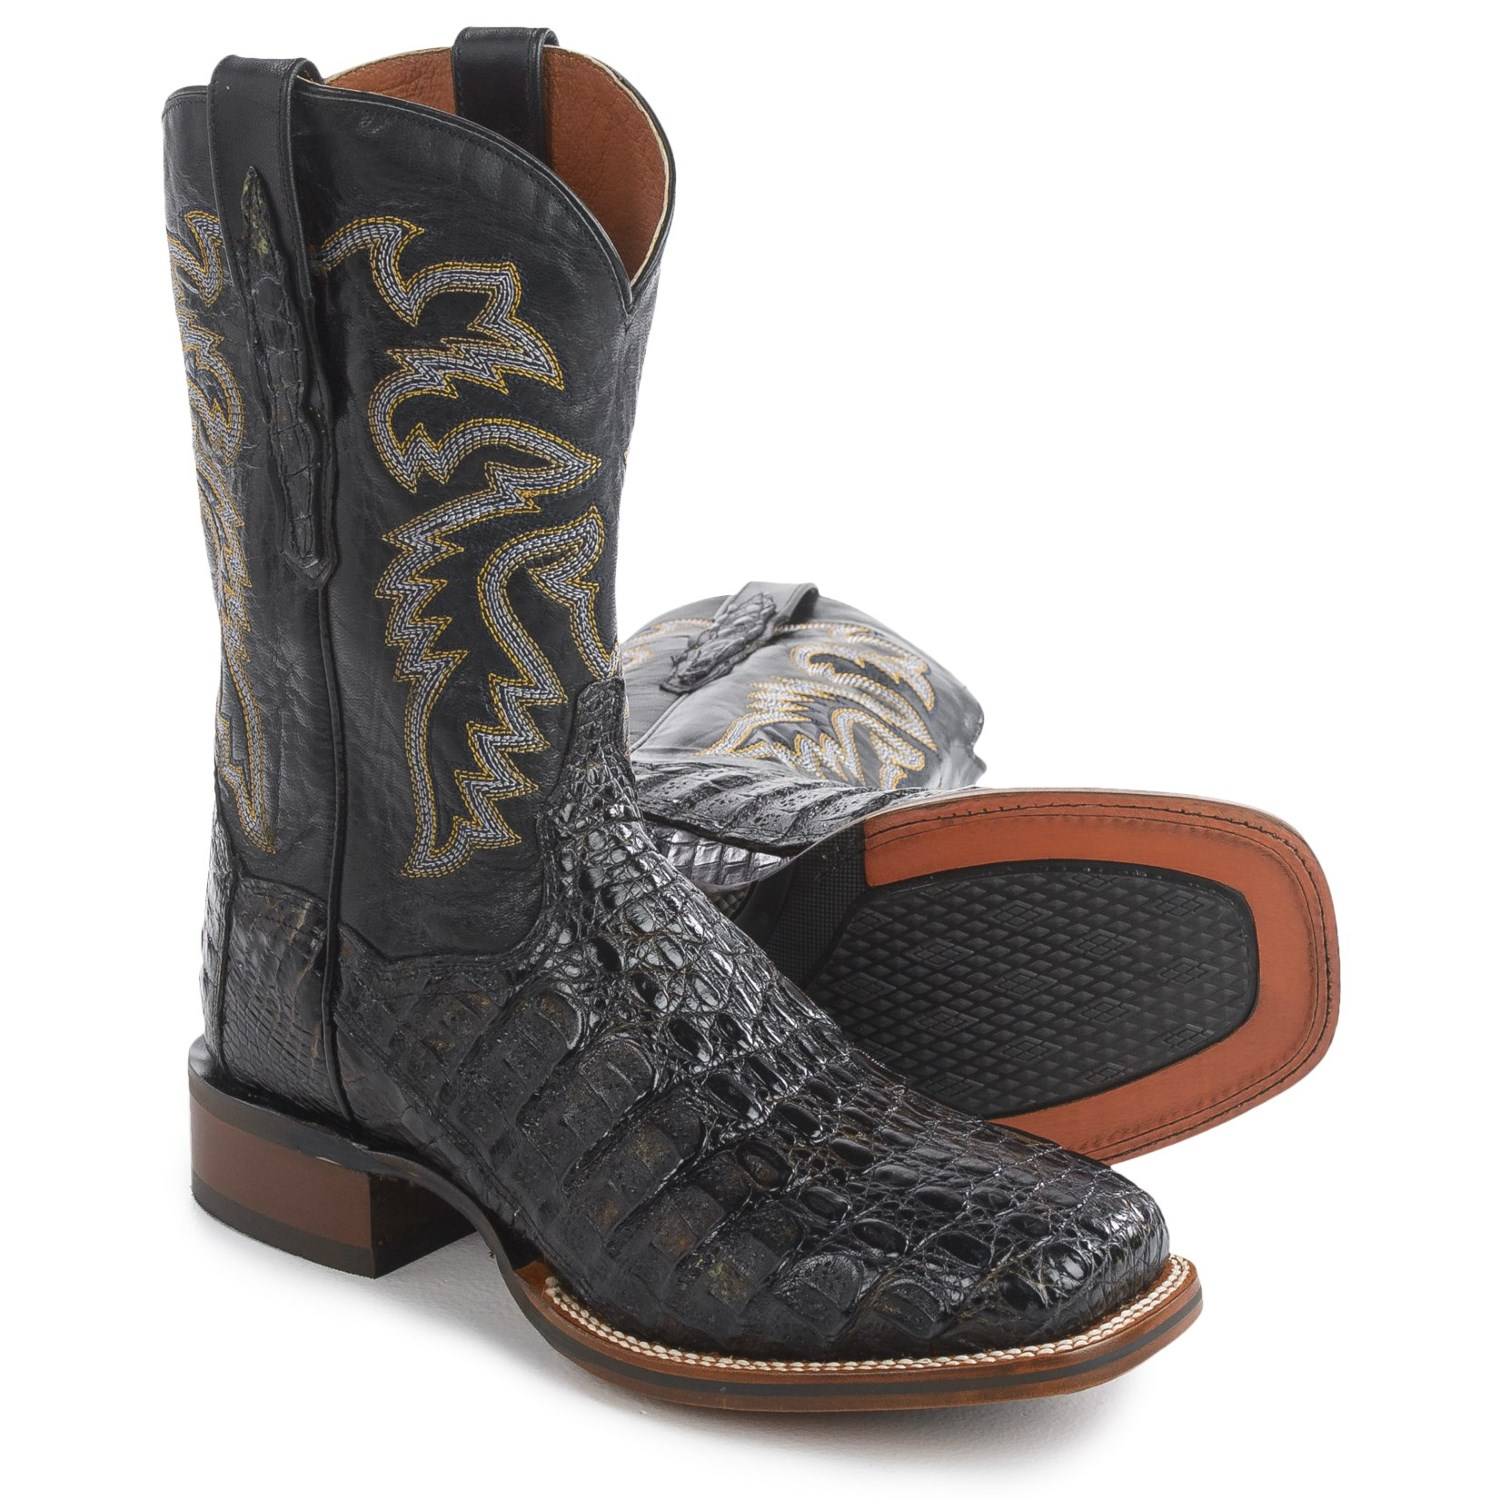 dan post everglades midnight caiman cowboy boots for